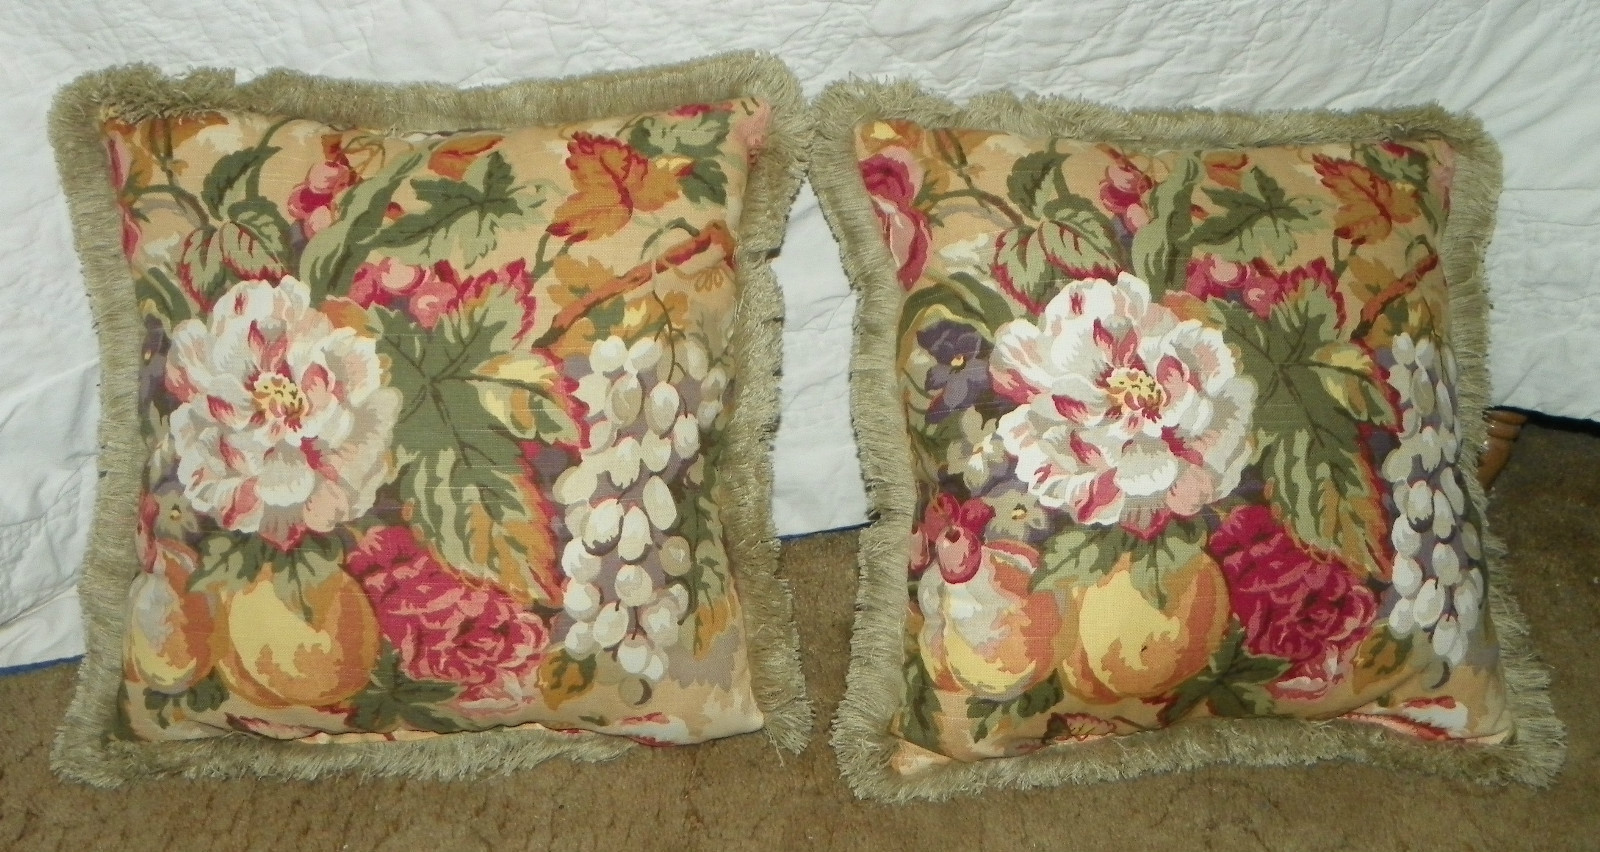 Primary image for Pair of Fruit Print Pillows / Throw Pillows 18 x 18  (PL92)